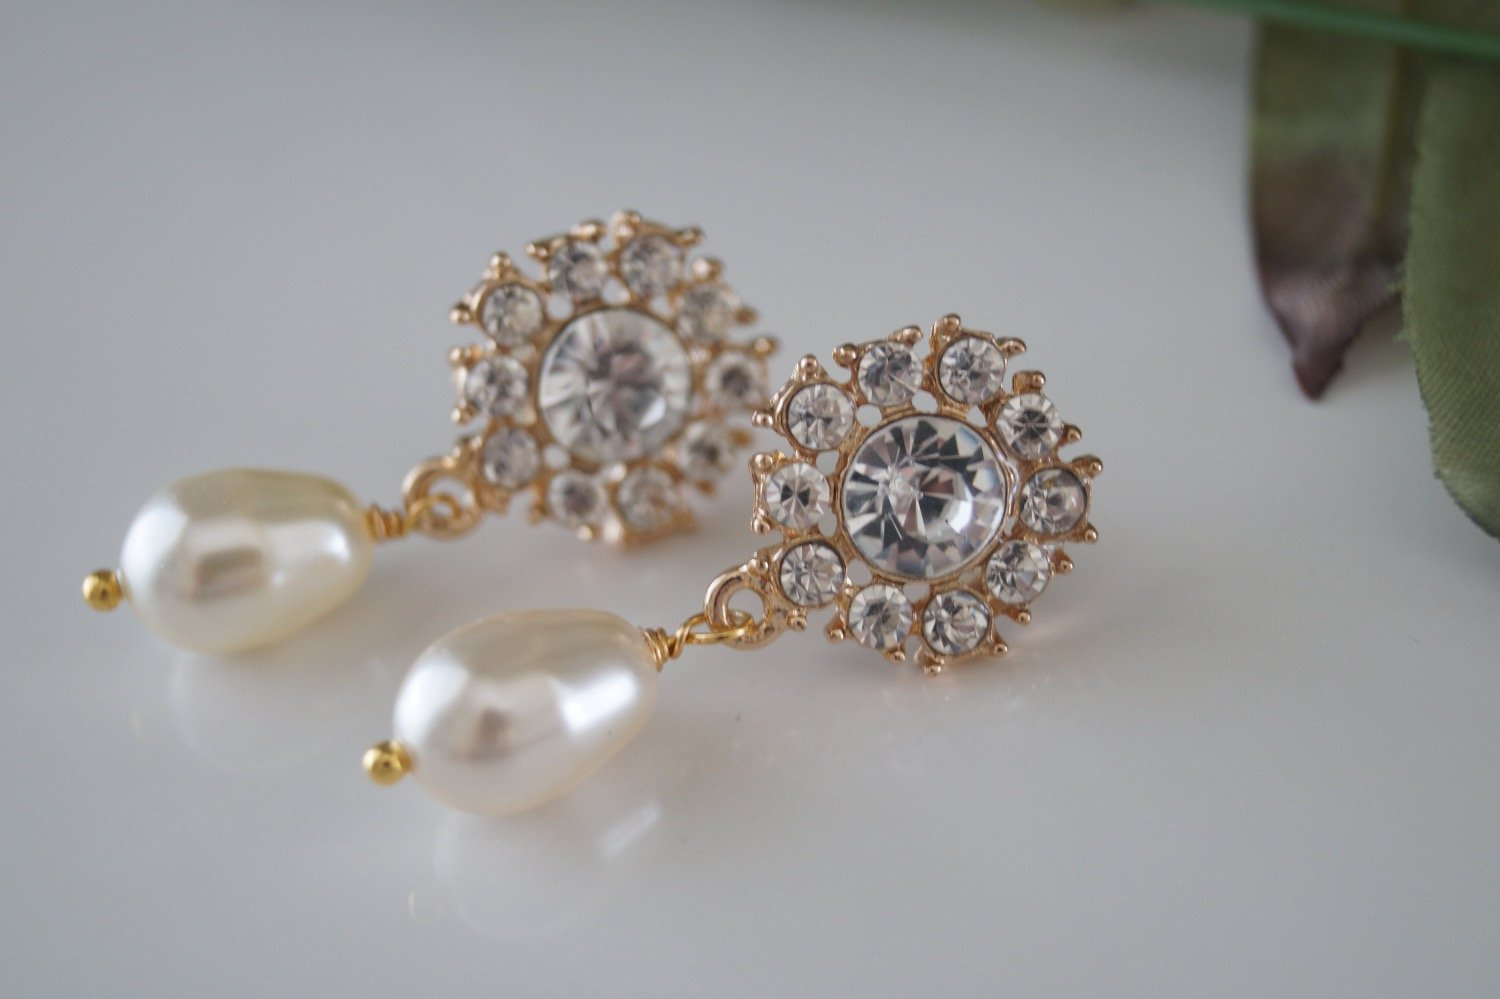 Gold Crystal Bridal Earrings Swarovski Pearl Drop Earrings - Clairesbridal - 4